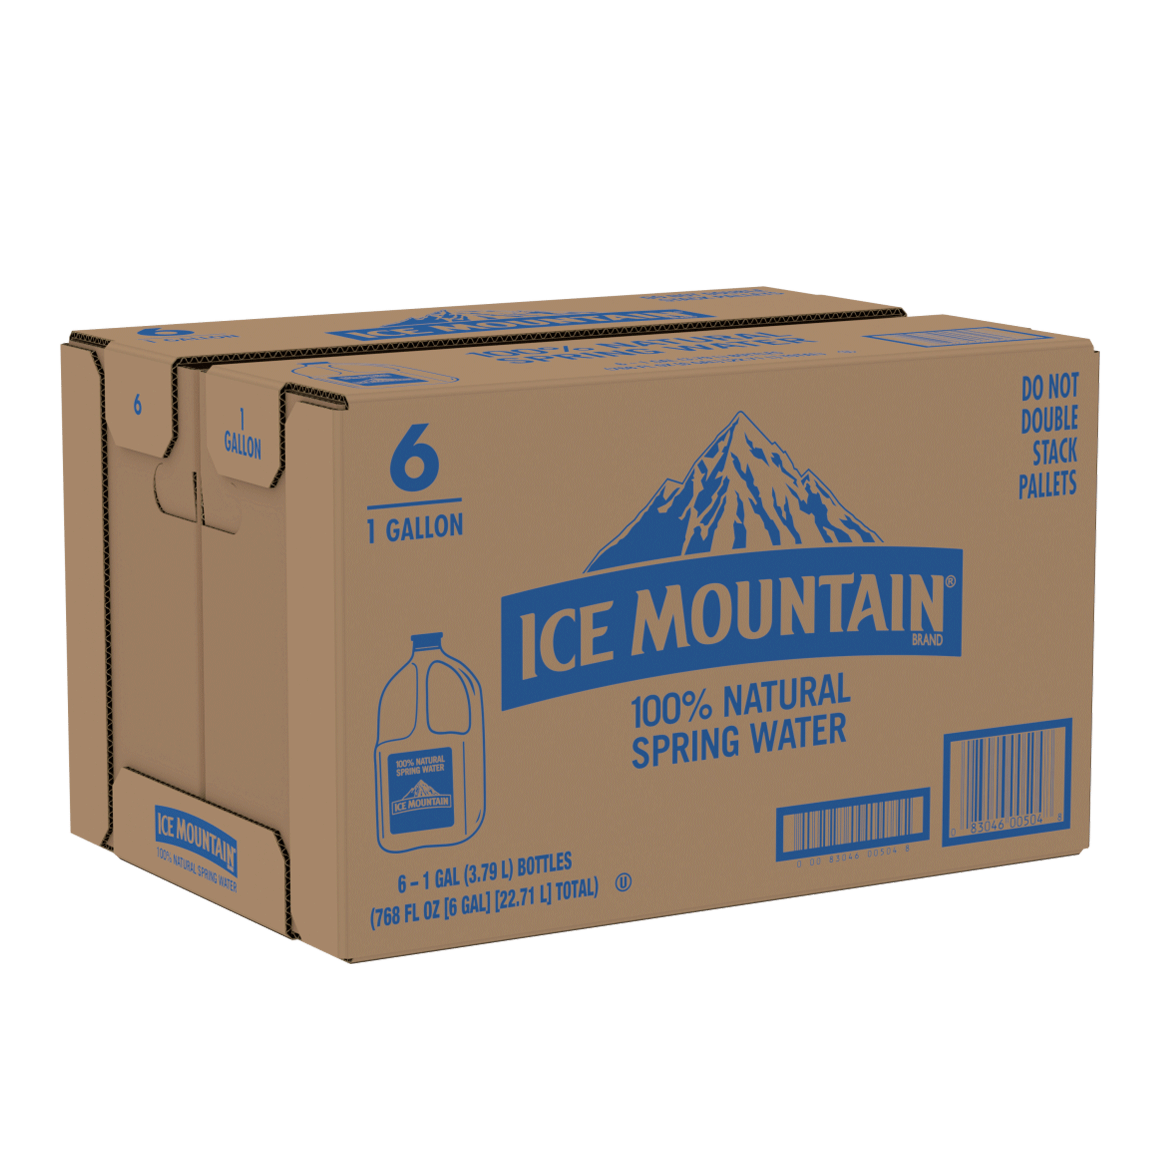 Ice Mountain® 100% Natural Spring Water with Handle Image1